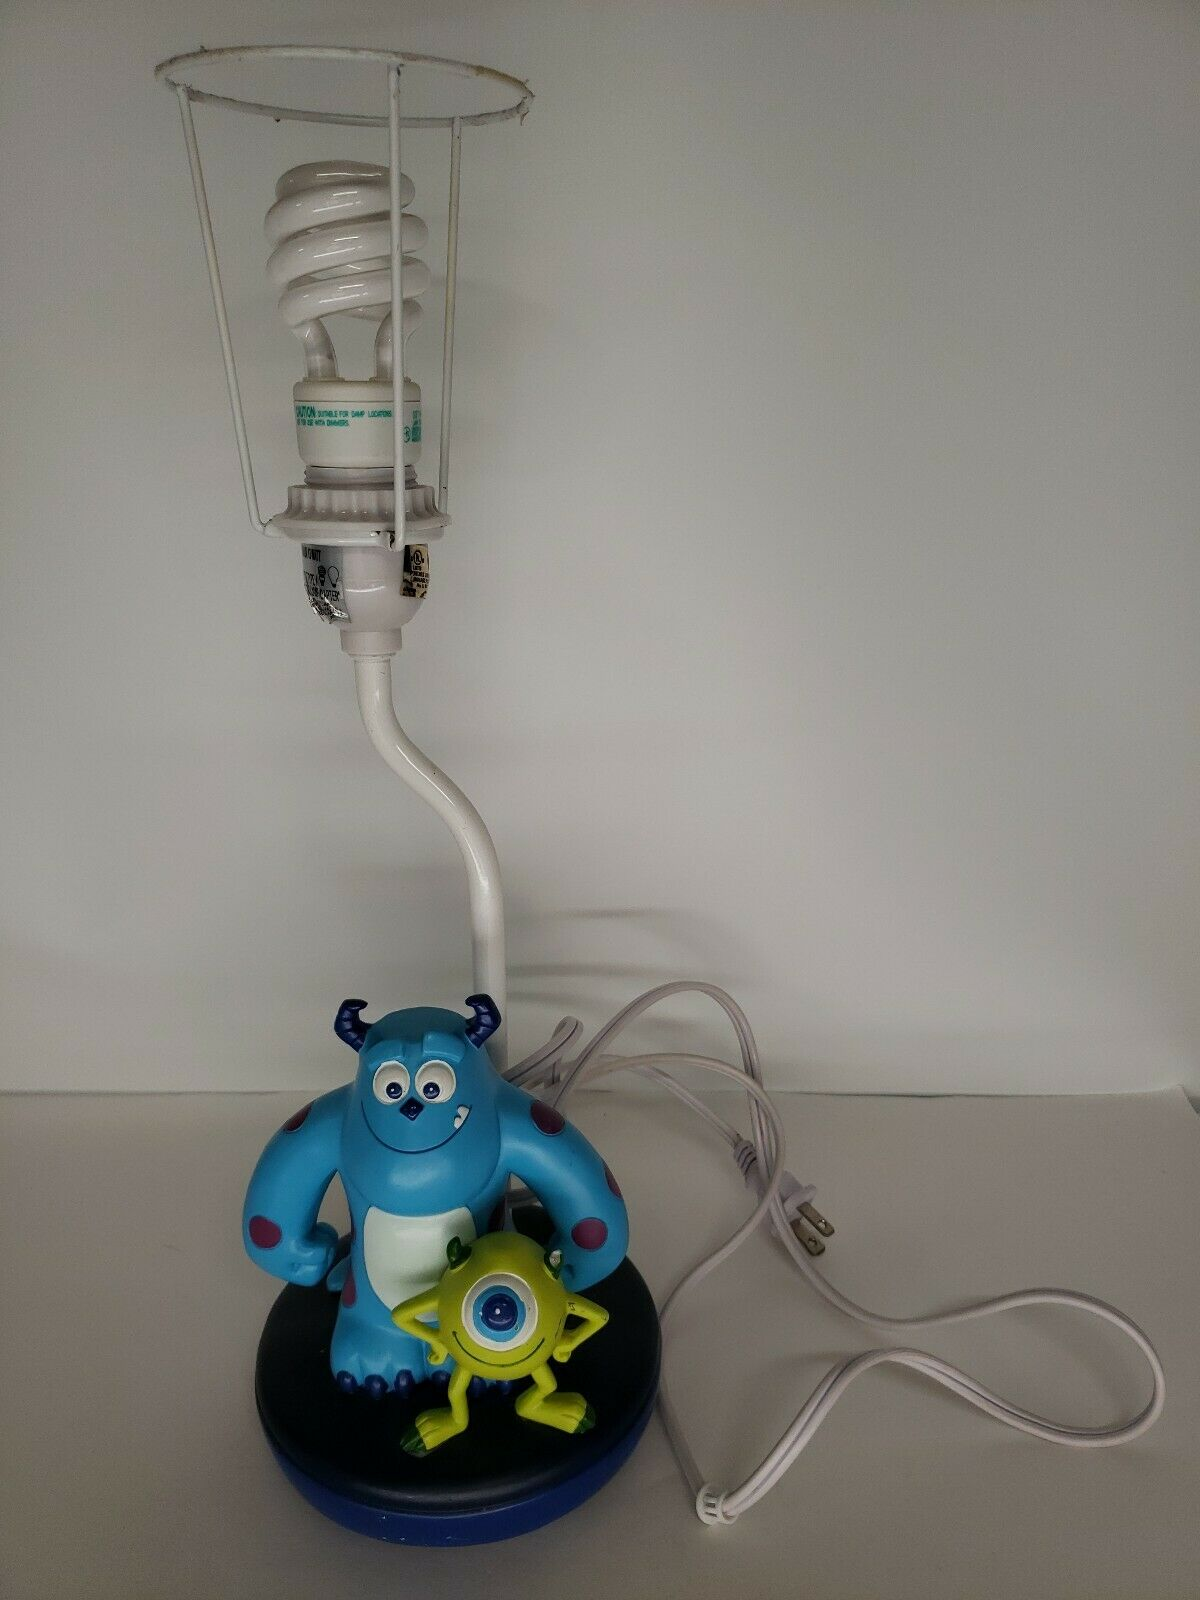 Disney Baby Monsters Inc Lamp And Shade Model 18951239 For Sale Online Ebay